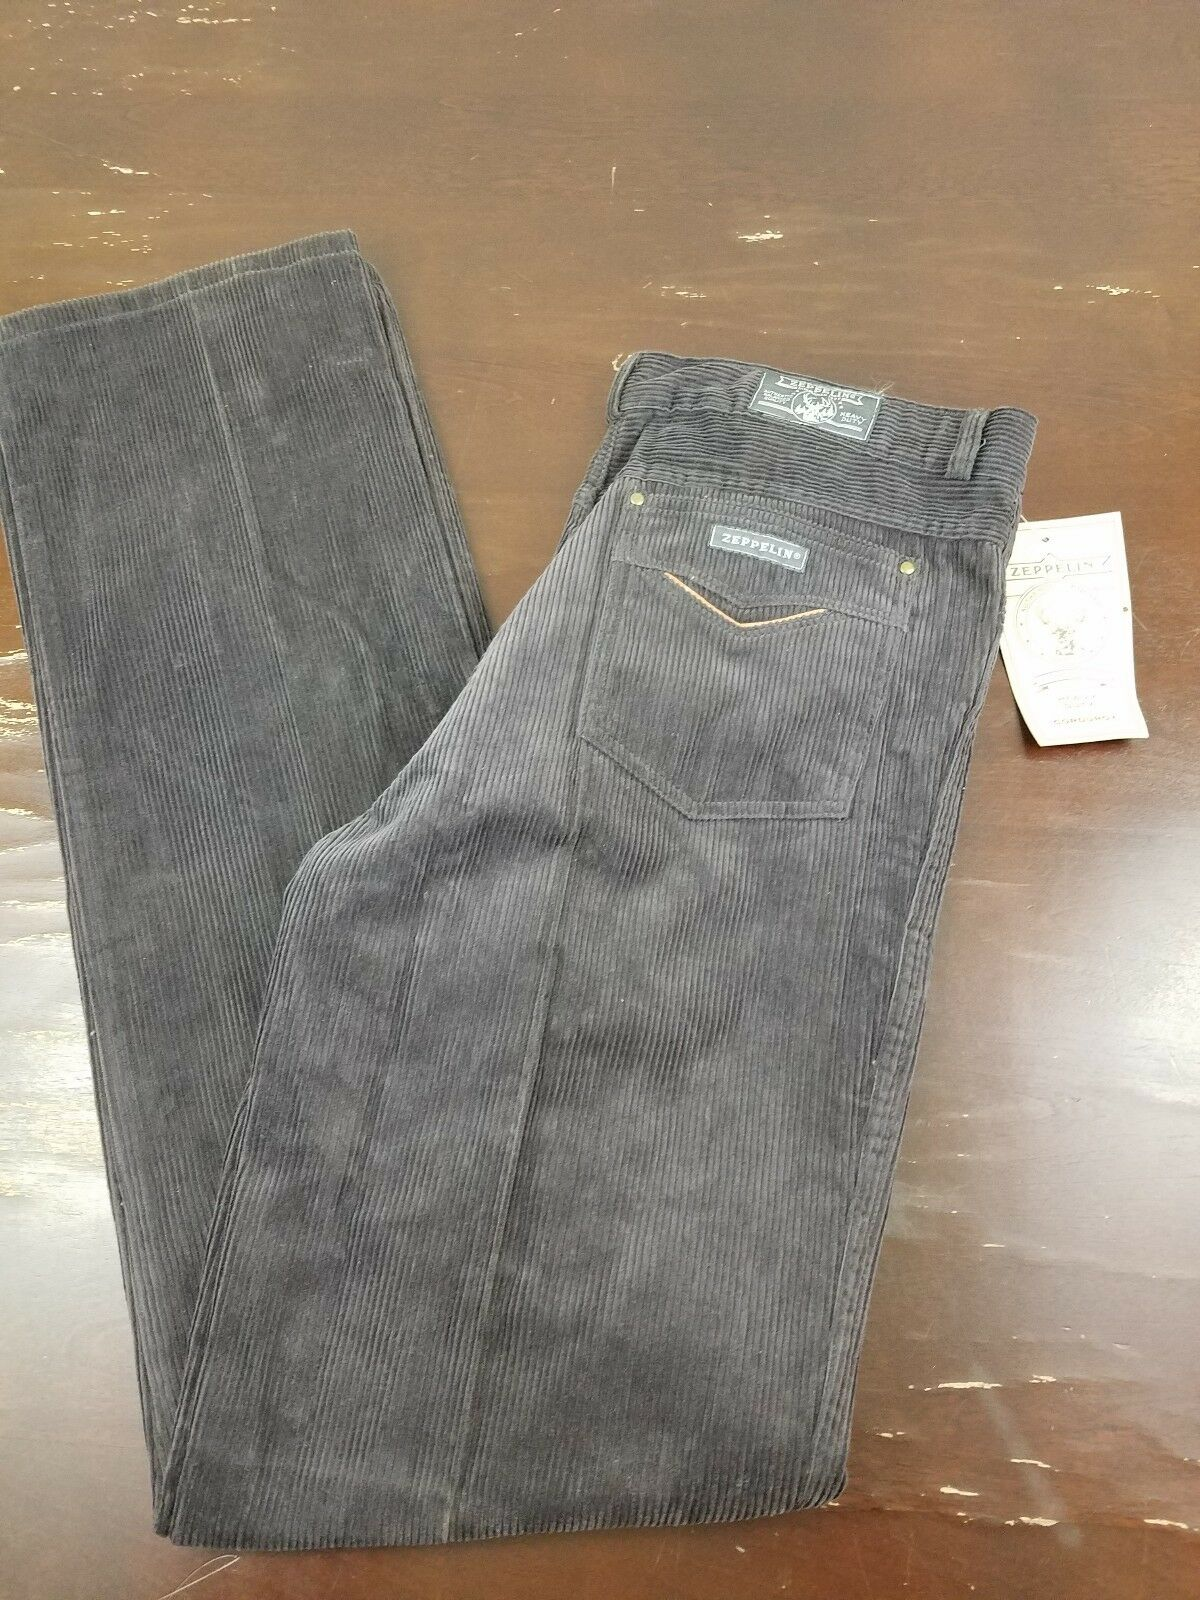 VINTAGE 1970's ZEPPELIN BROWN CORDUROY PANTS SIZE 36x35.5 NEW WITH TAGS NOS